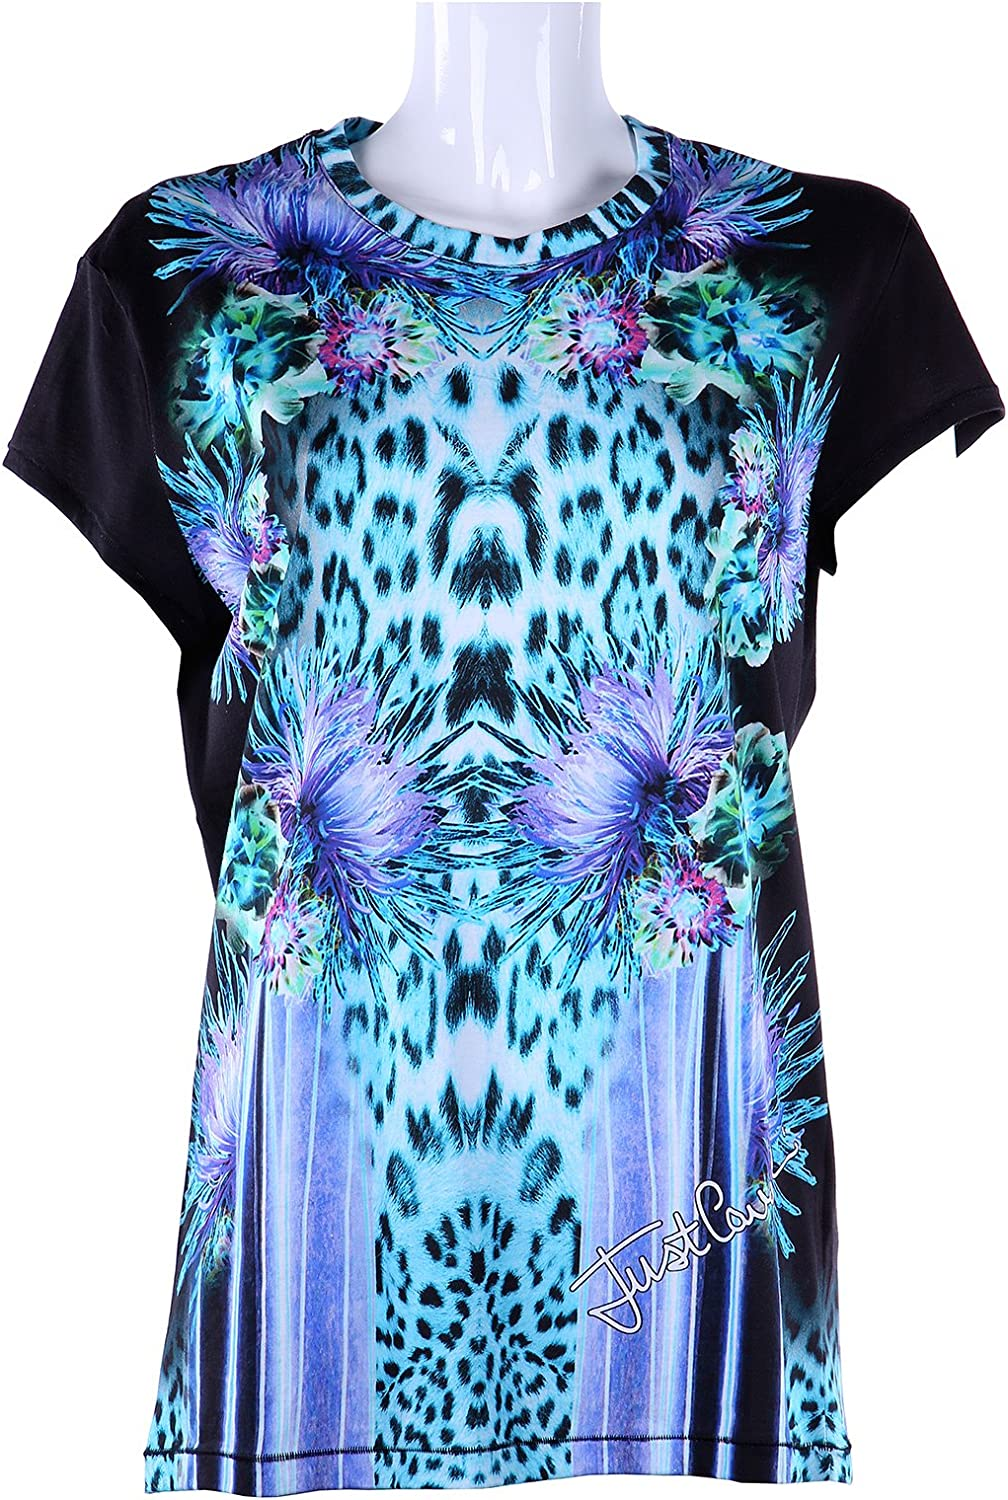 Just Cavalli Womens Mixed Printed Top